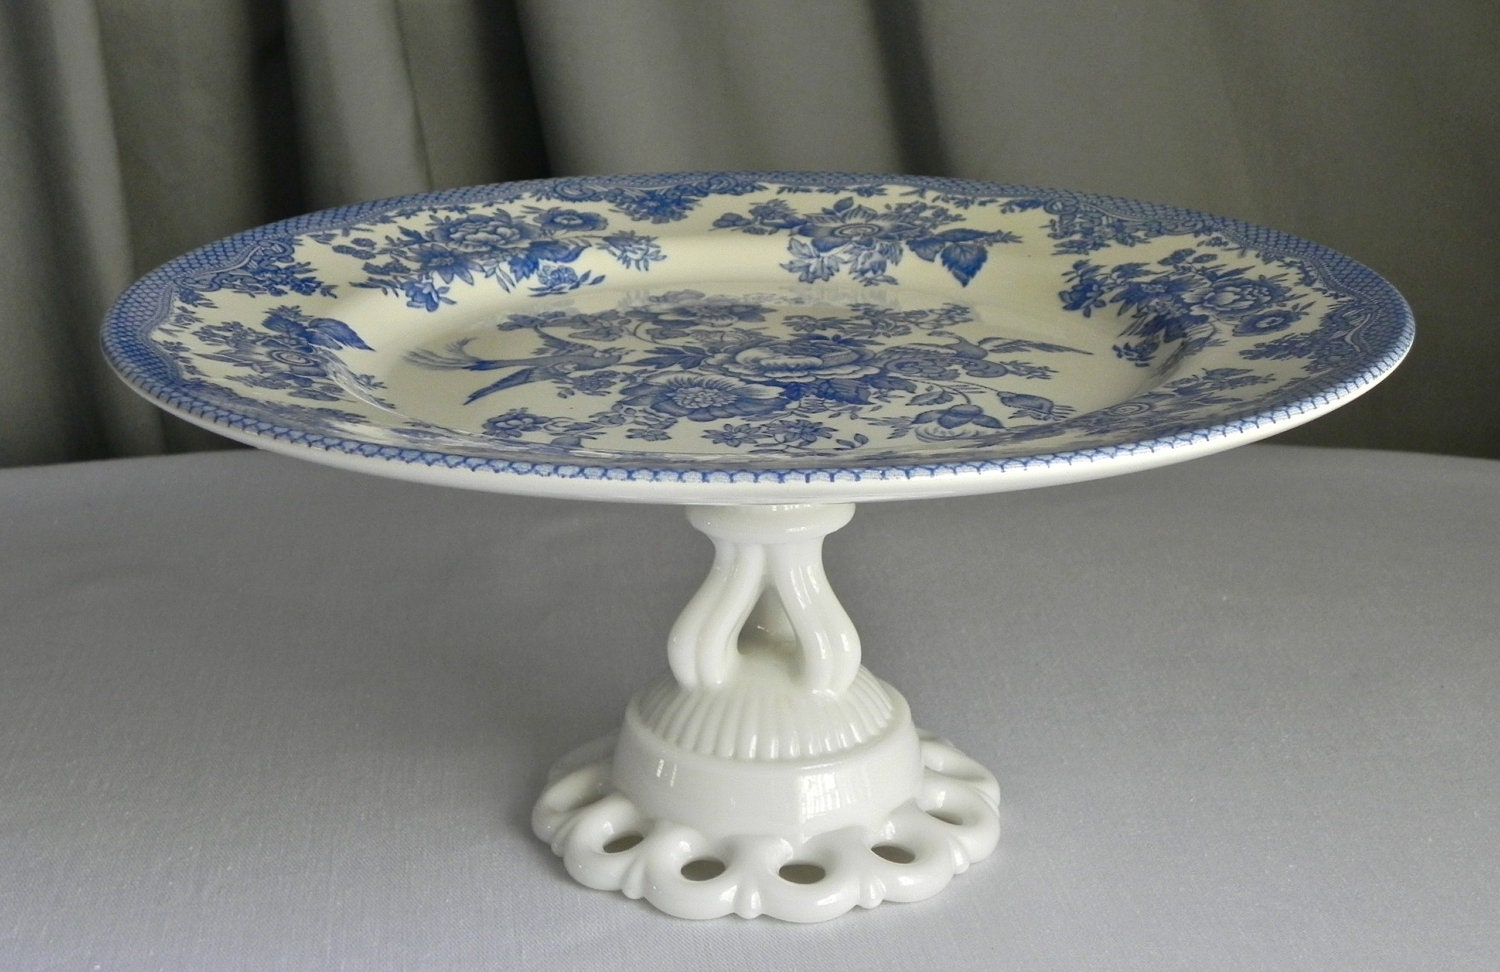 decorative cake stands for wedding cakes vintage cake stand cupcake stand vintage wedding decor blue 13435